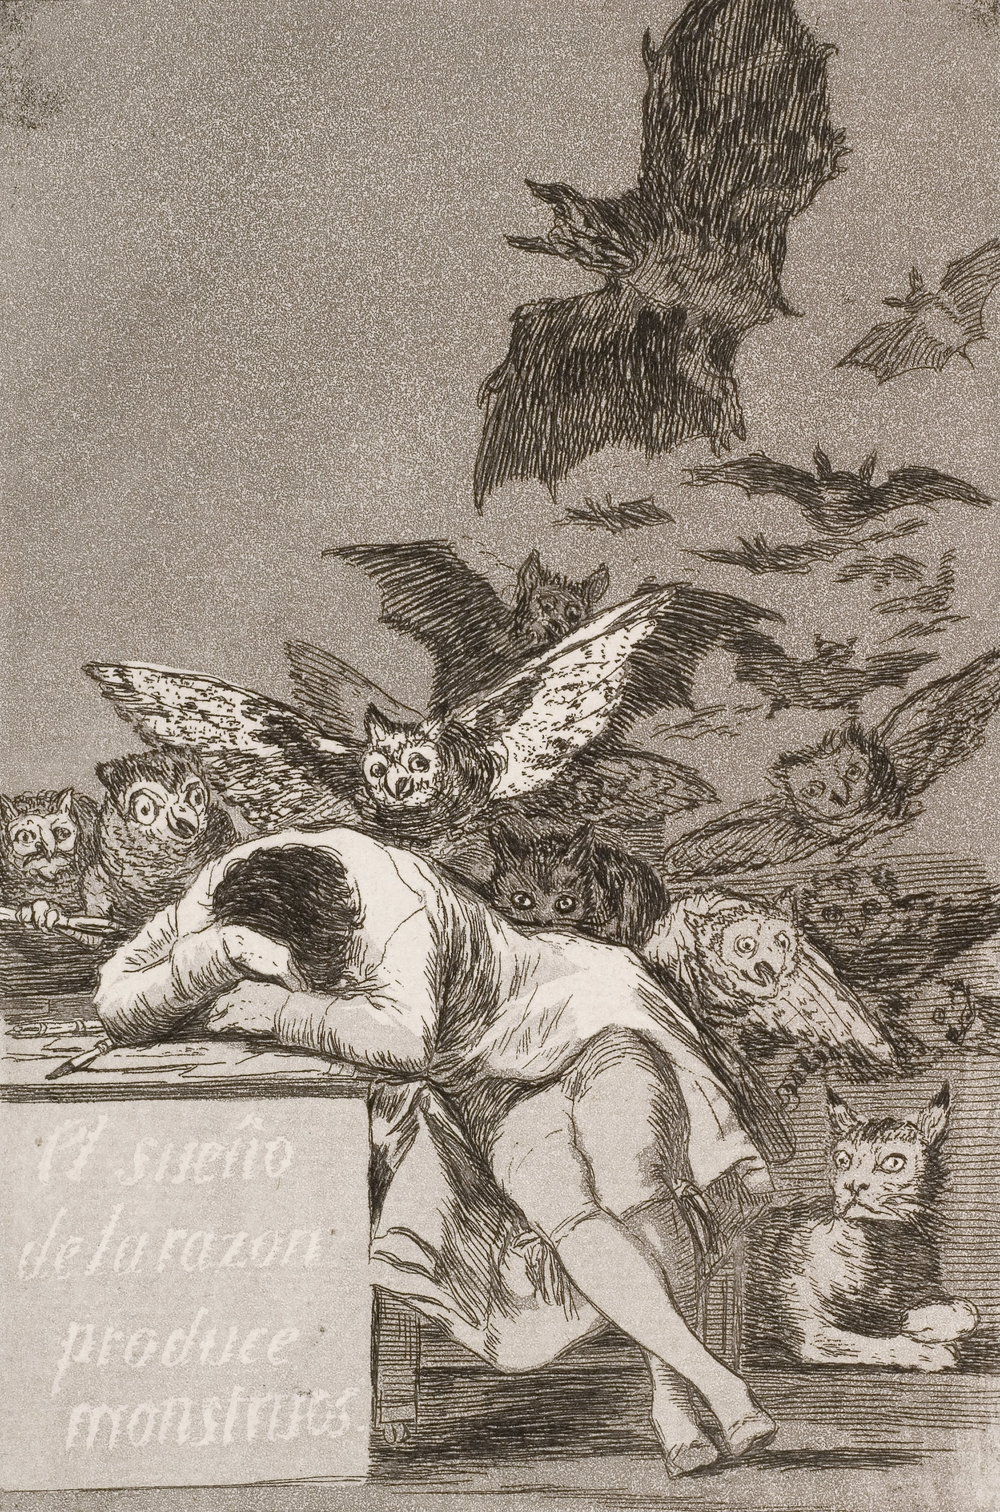 Francisco Goya, The Sleep of Reason Produces Monsters, c. 1799.